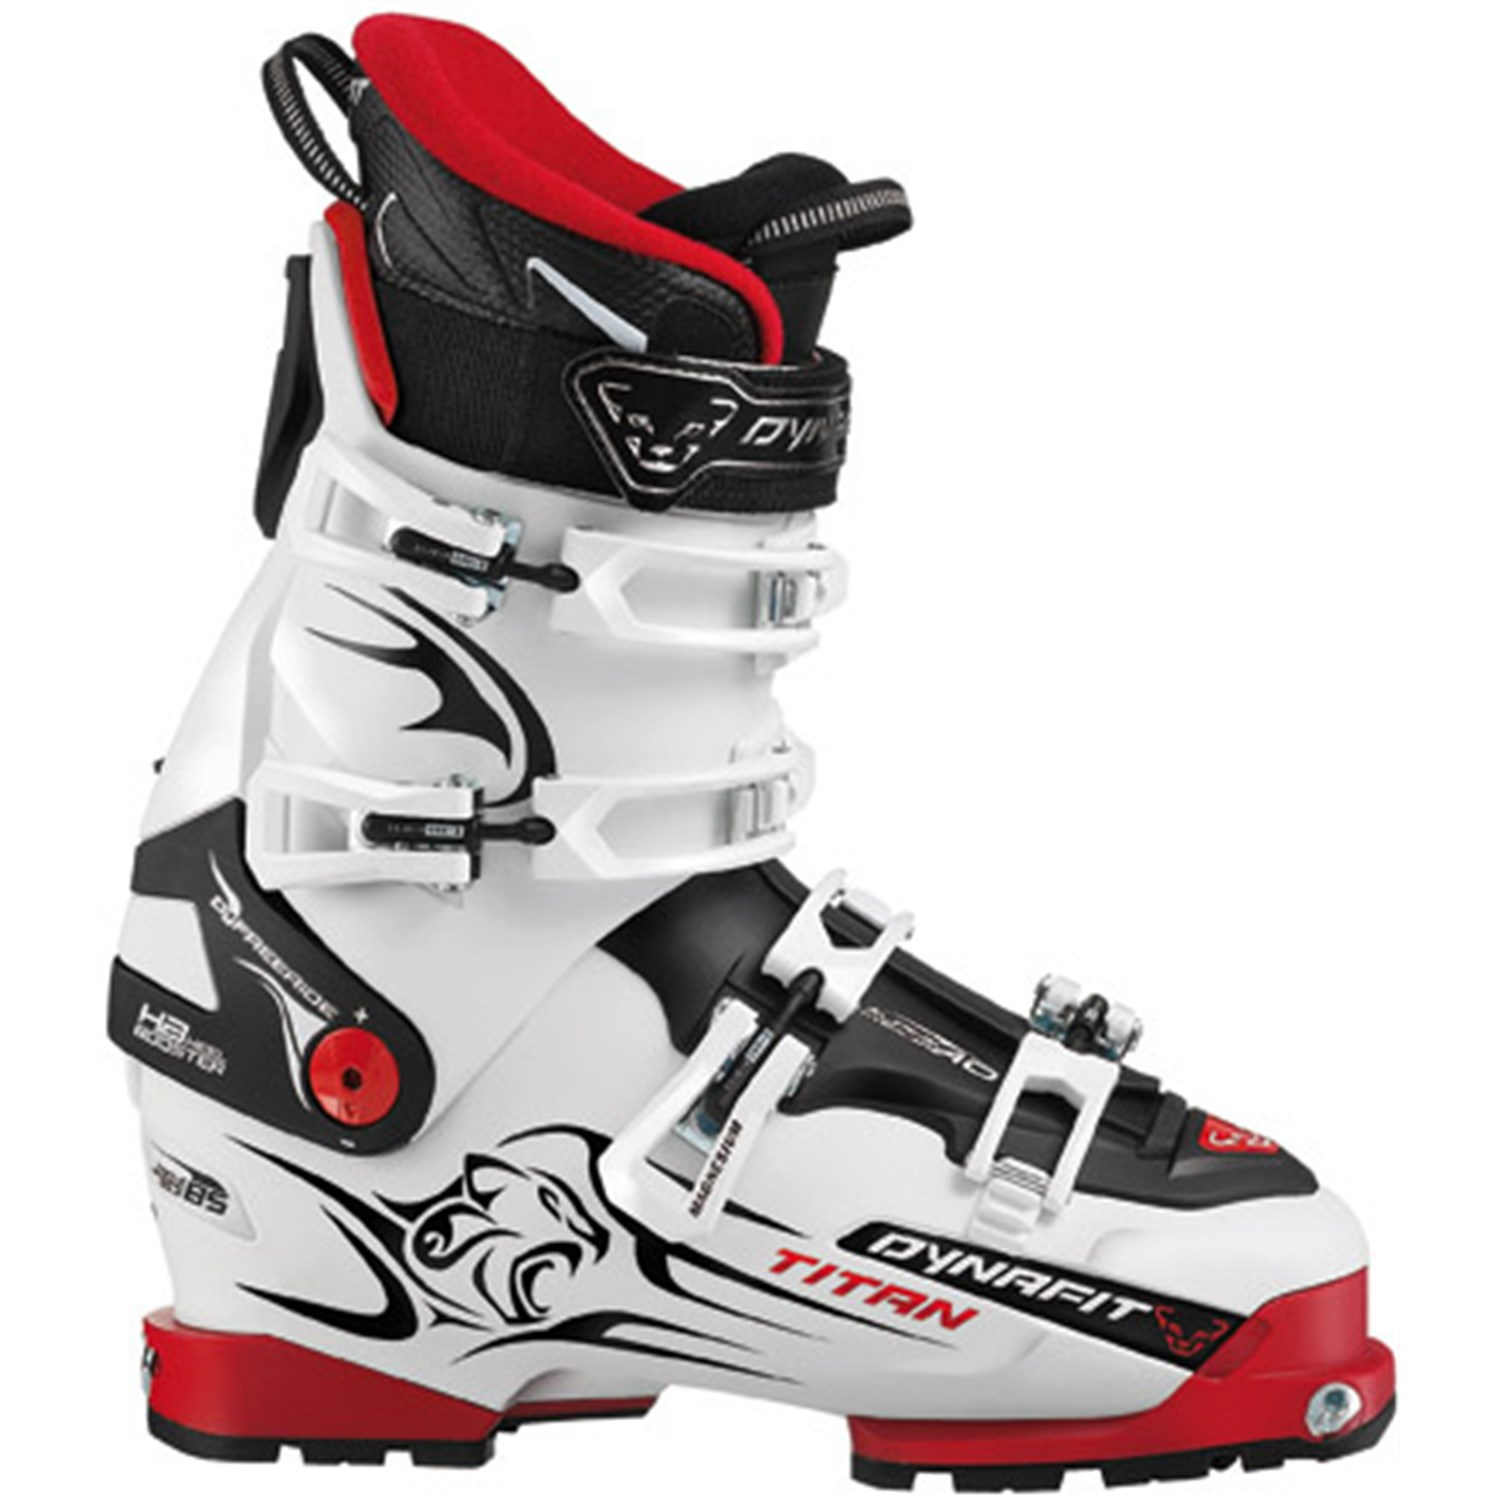 Best Ski Boots | Buyers Guide 2014 | How to Buy | Skiing Gear | SKI